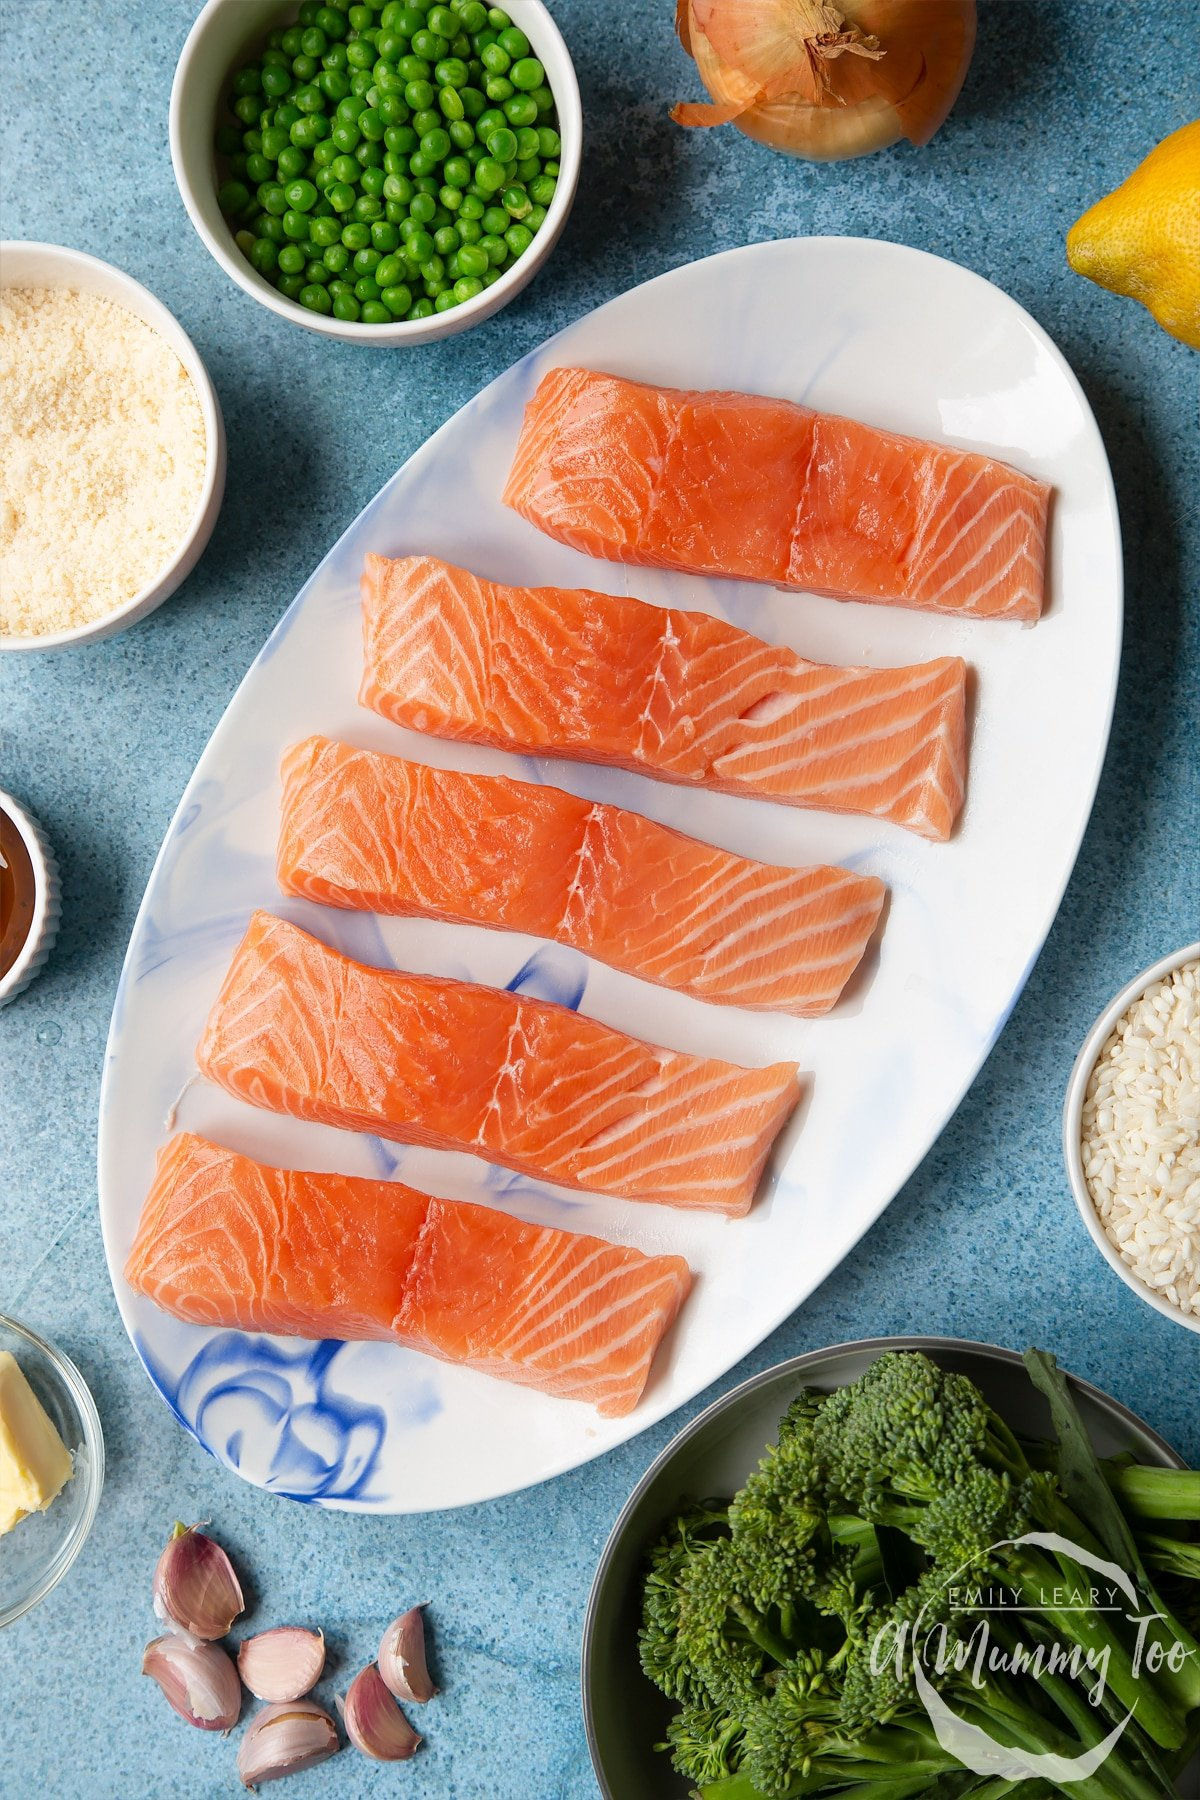 Fresh Scottish salmon fillets on a white, oval plate. Ingredients to make salmon risotto surround the plate.